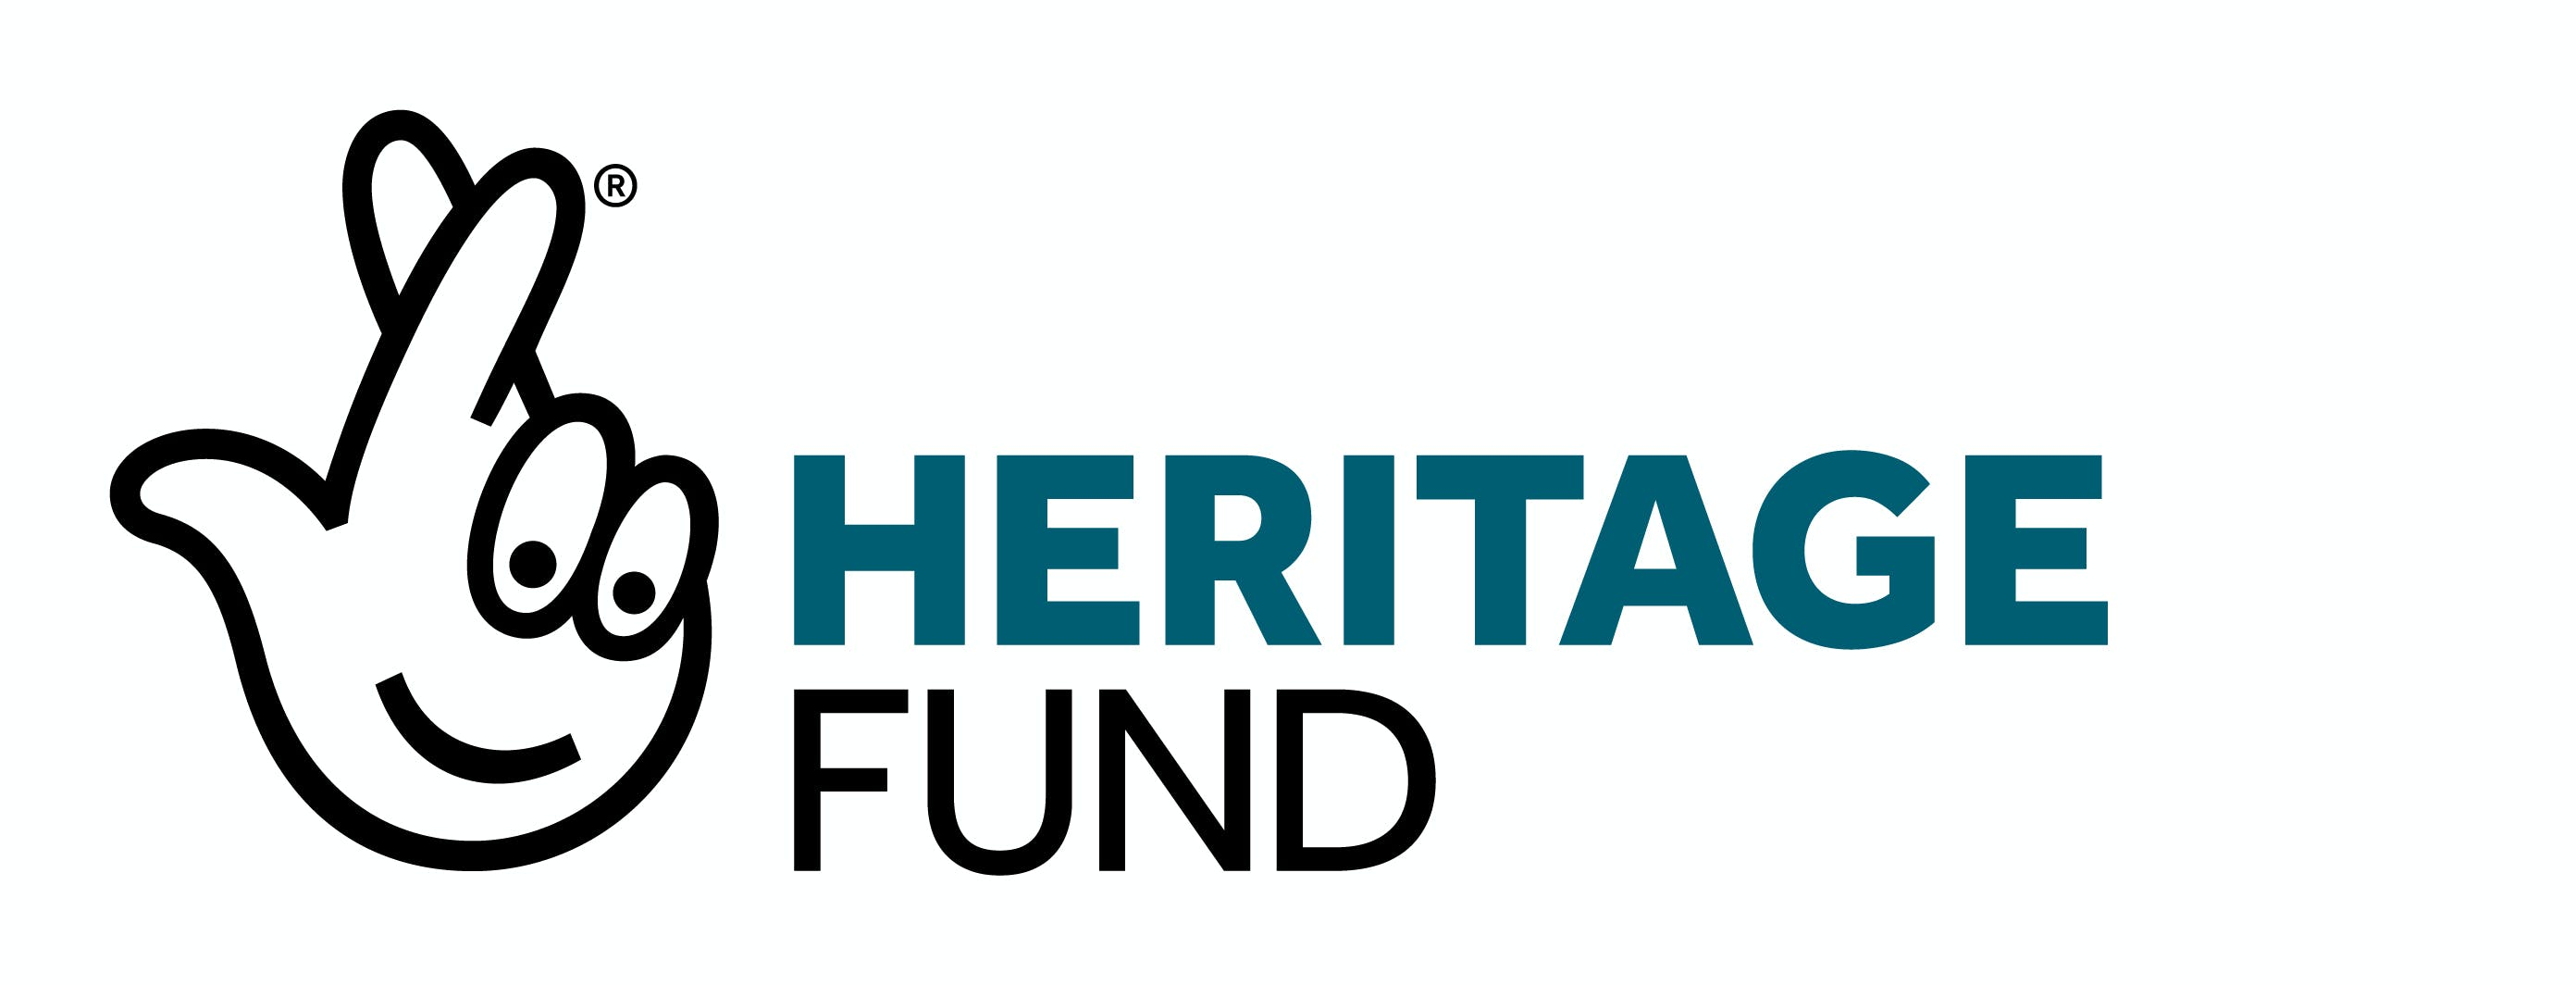 National Lottery Heritage Fund.jpg